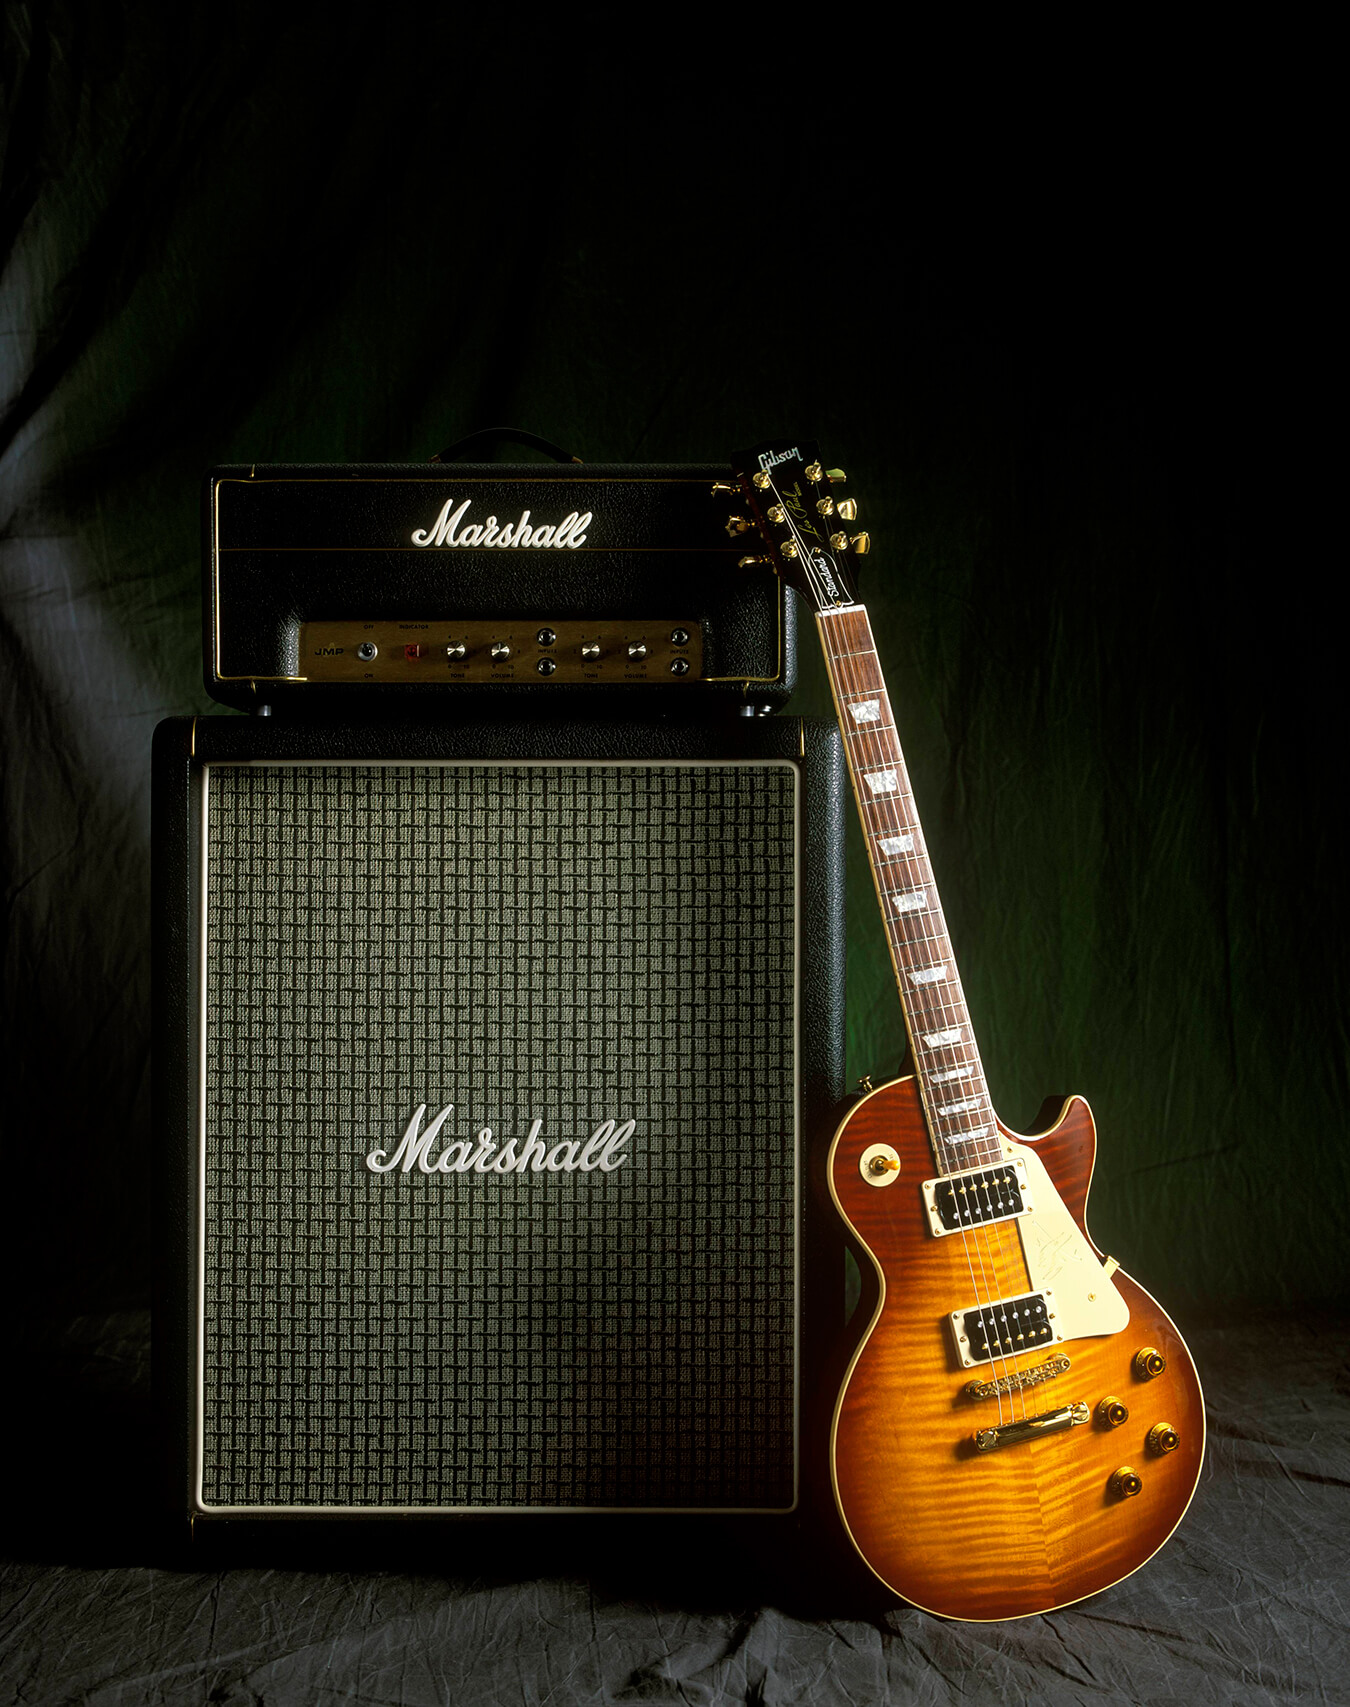 Jimmy Page's Marshall